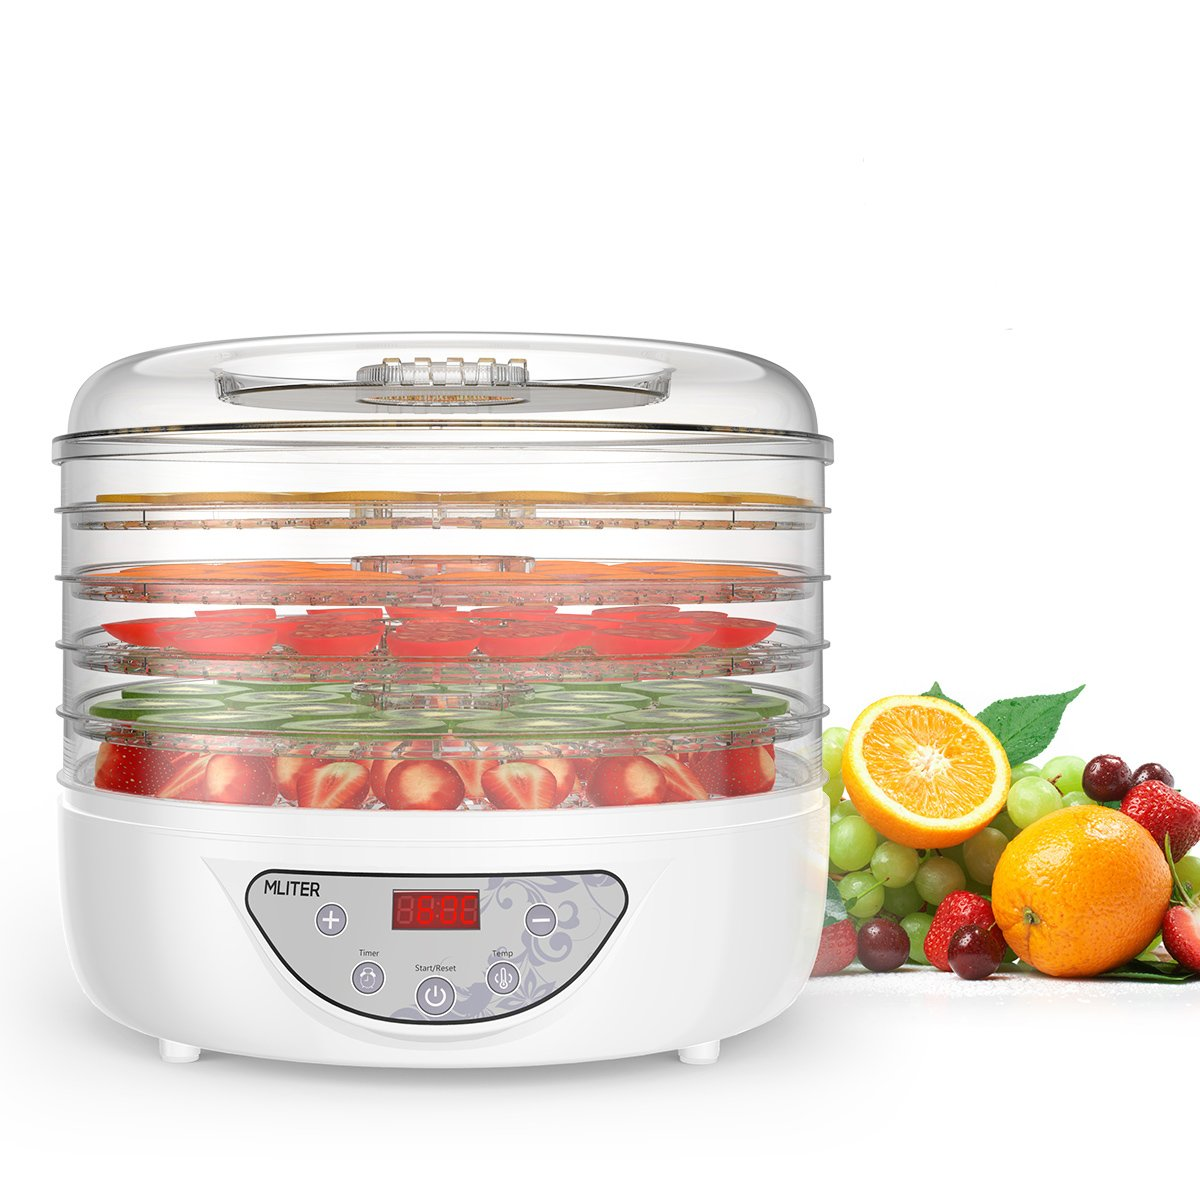 Mliter 5 Stackable Tray Digital Food Dehydrator Electric Food Preserver Vegetable Flower Snack Dryer with Countdown Function Time Control and Automatically Stop Digital Display Control Panel MLITERUK